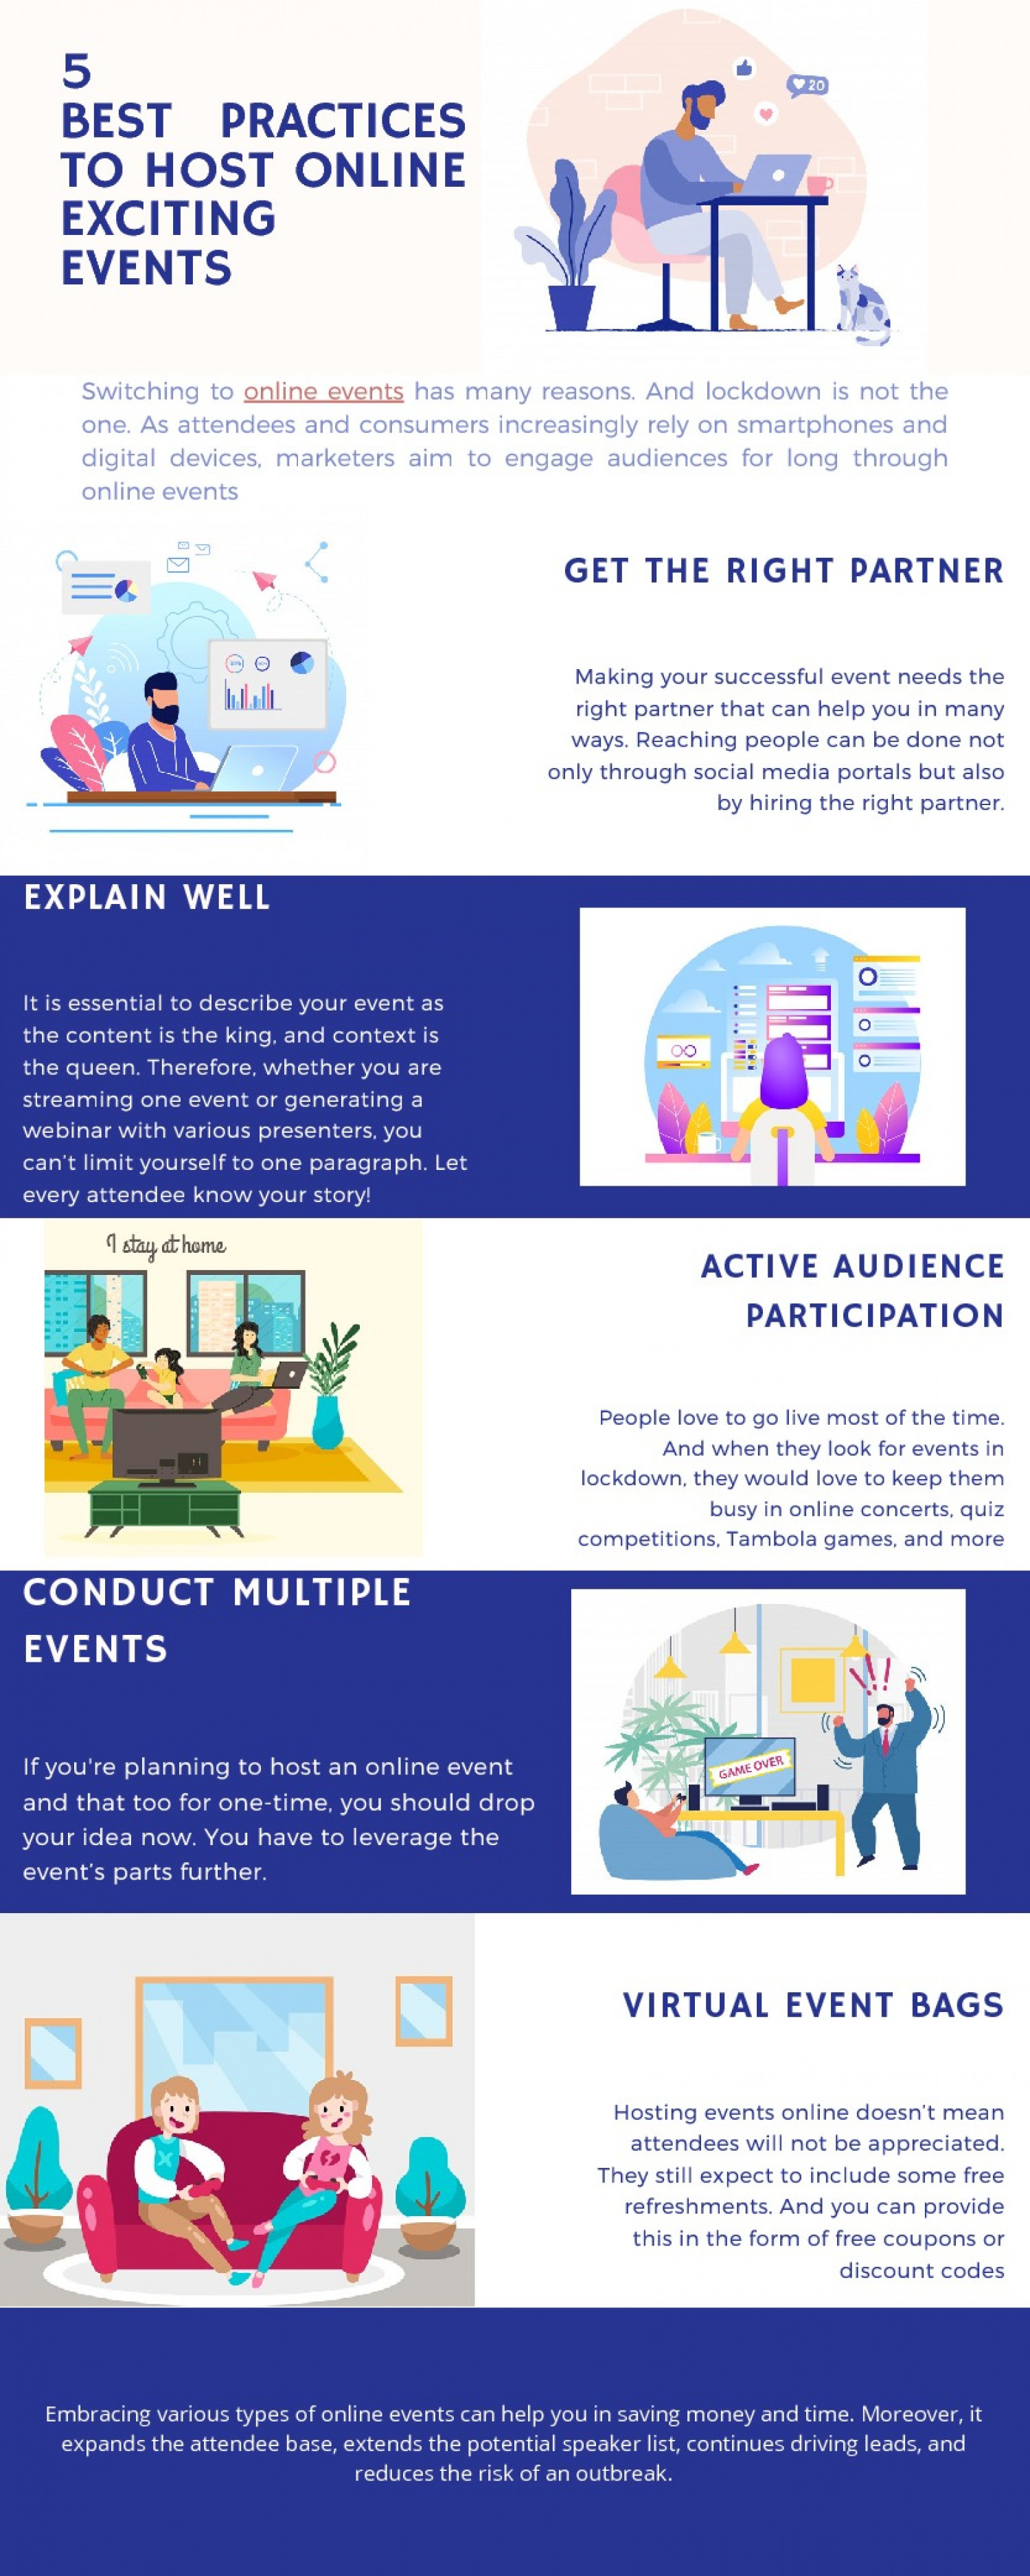 5 Best Practices to Host Exciting Online Events Infographic